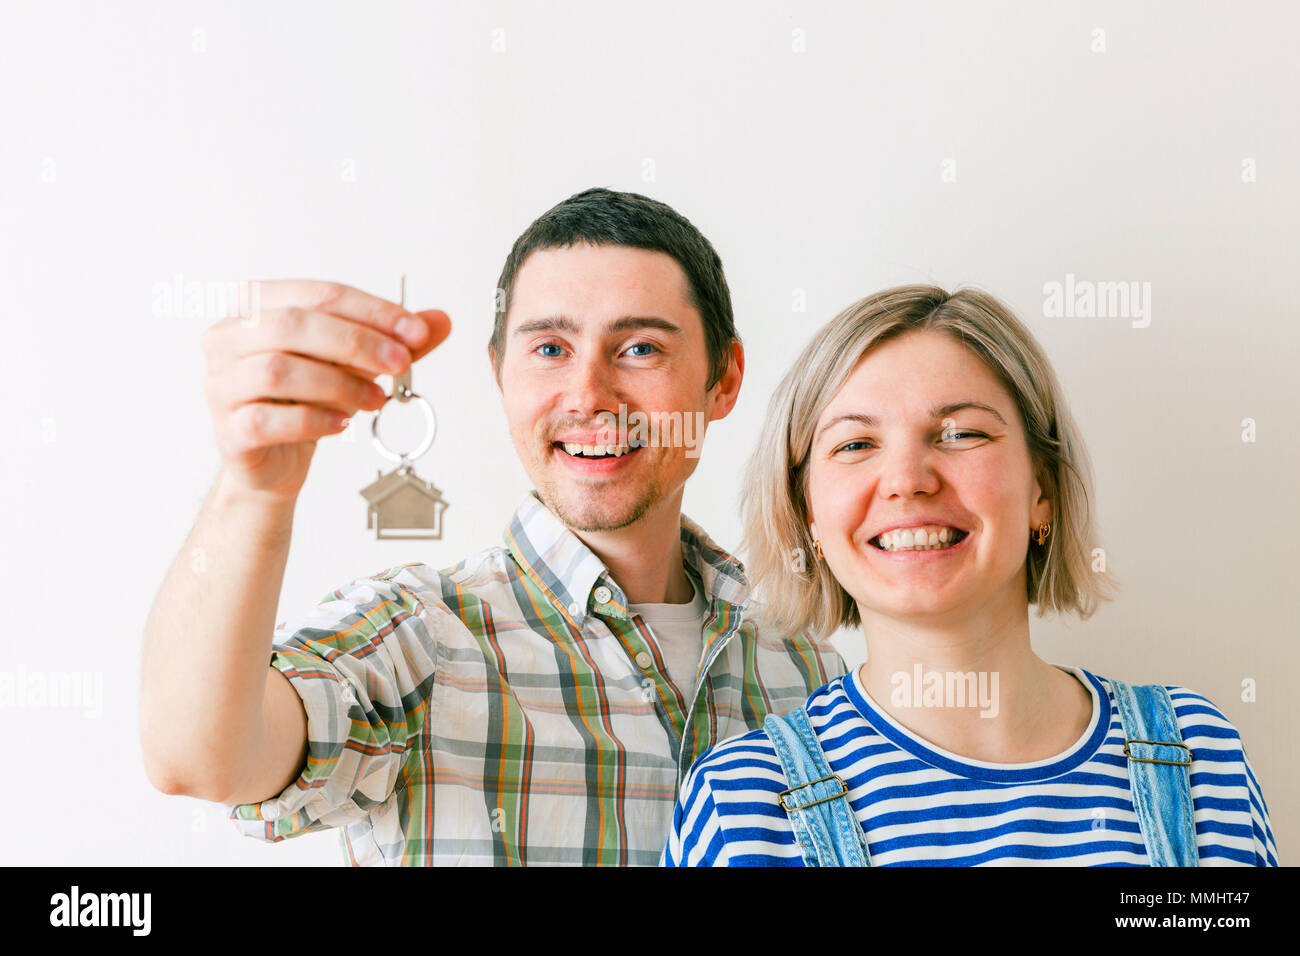 Photo of woman and man with keys from apartment against blank wall - Stock Image